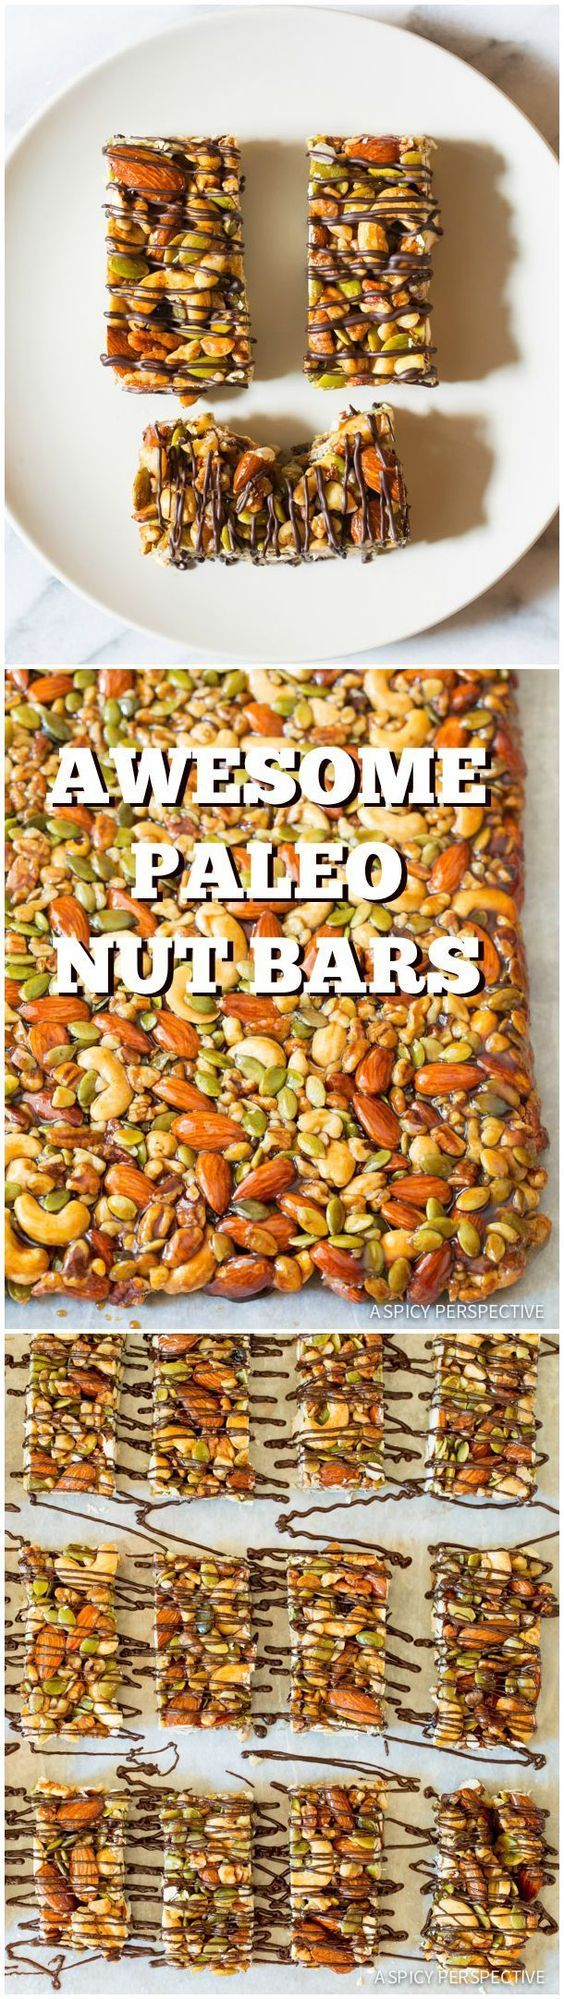 Crazy Over These Kid-Friendly Paleo Nut Bar Recipe with Chocolate Drizzle on ASpicyPerspective.com #paleo #vegan #glutenfree: